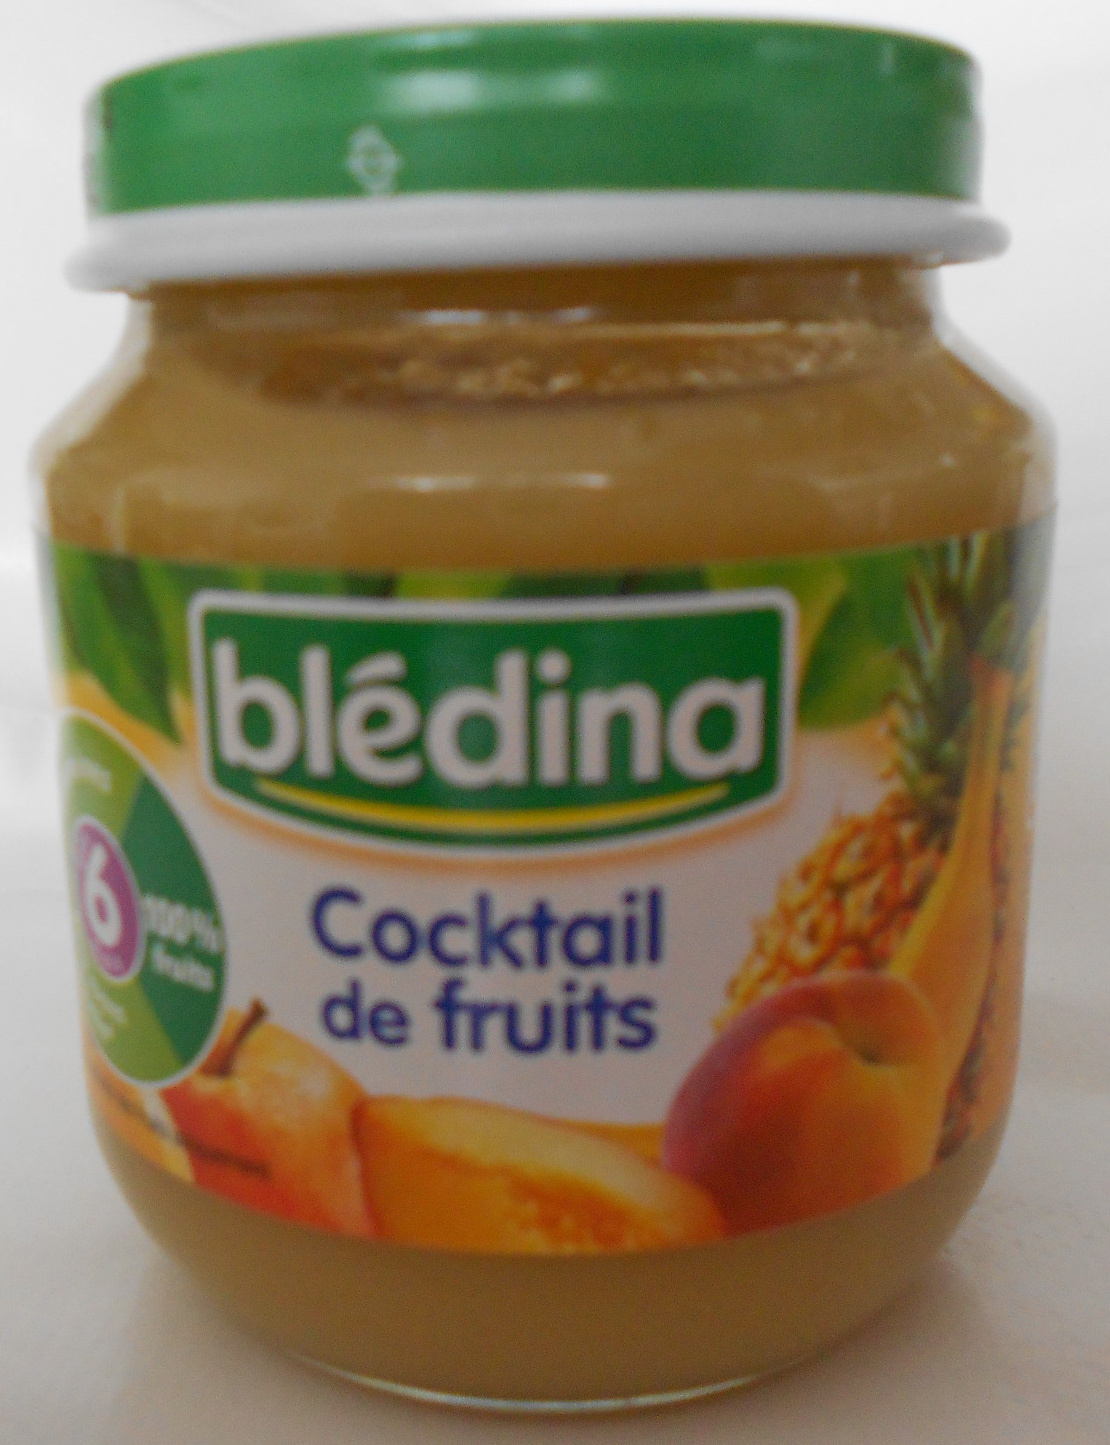 Cocktail de fruits bl dina 130 g for Cocktail de fruit